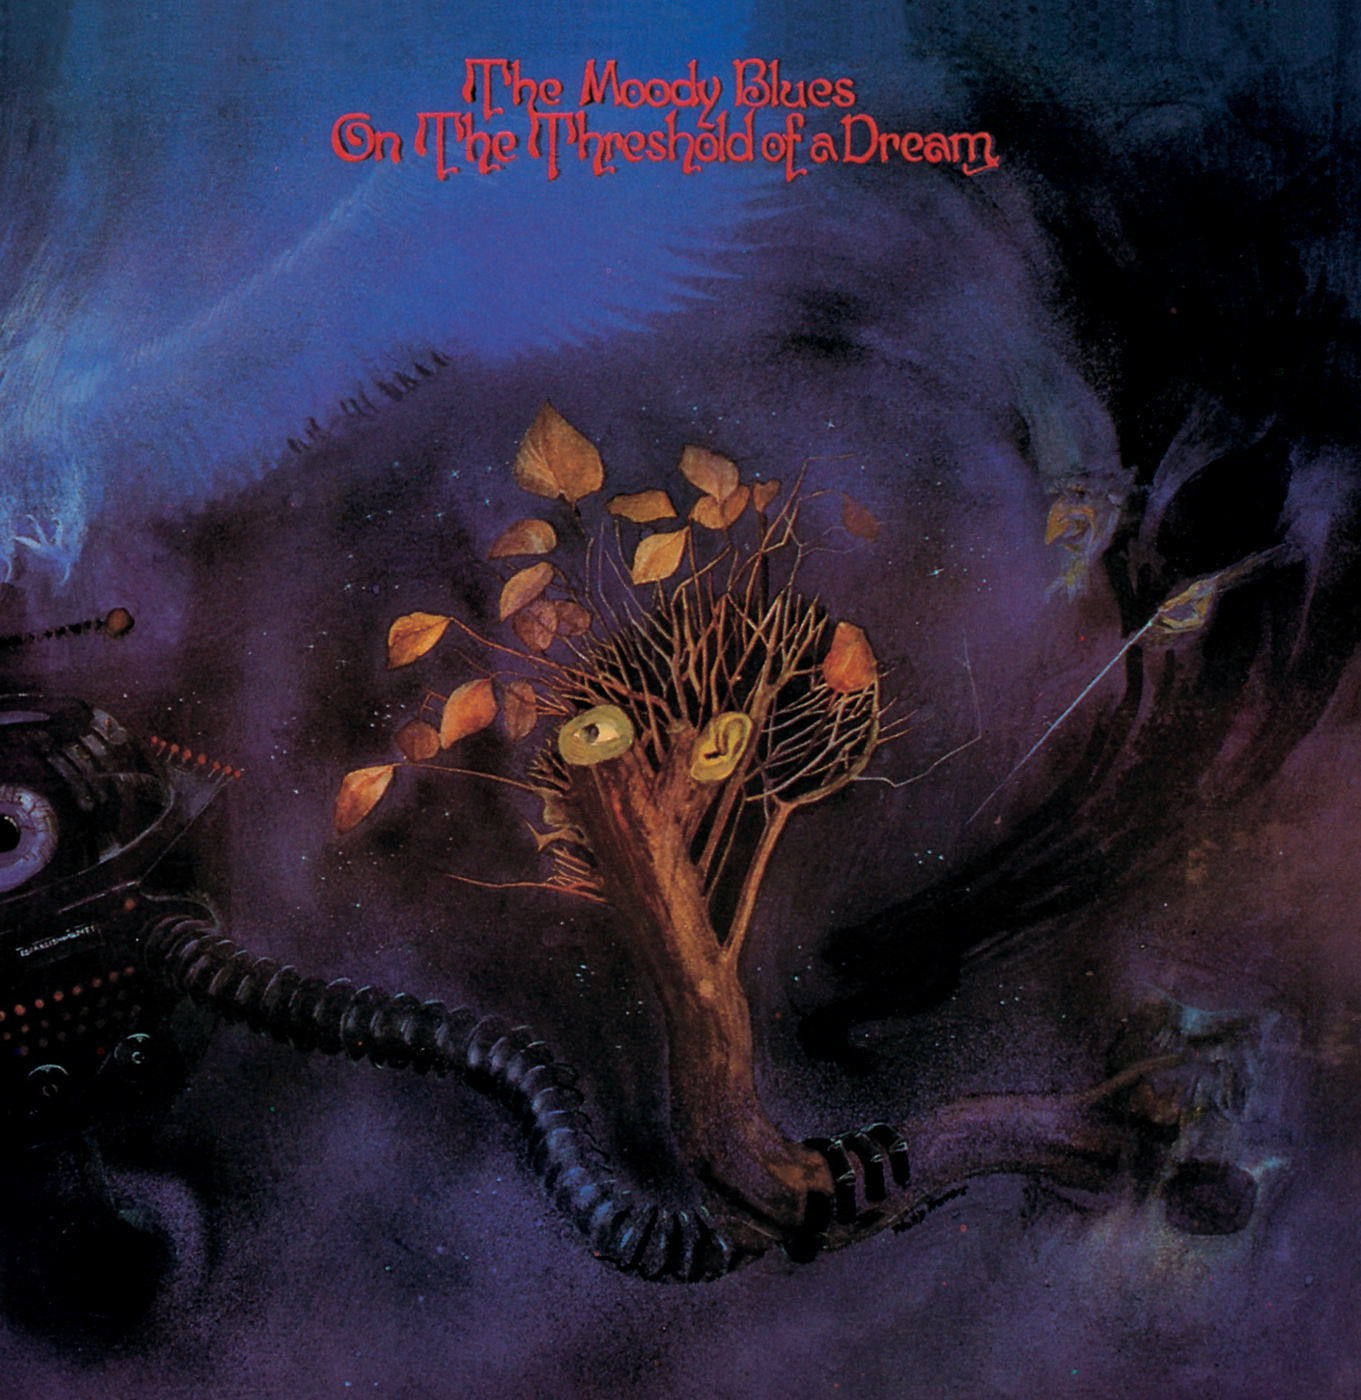 Listen Free to The Moody Blues - In The Beginning Radio | iHeartRadio